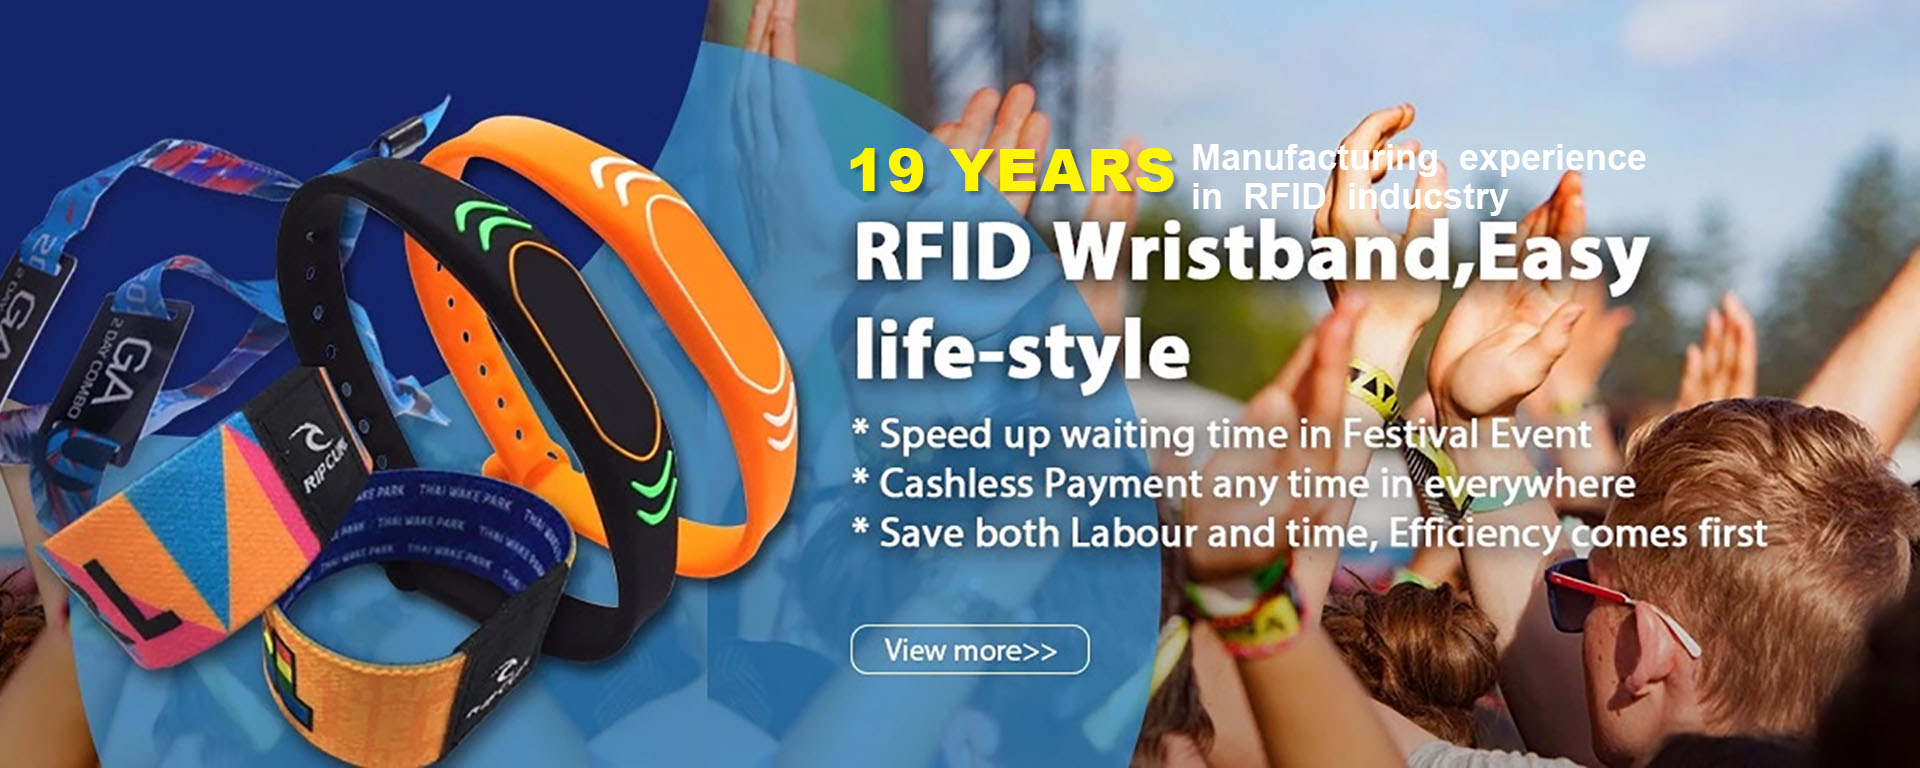 Customized RFID Bracelets